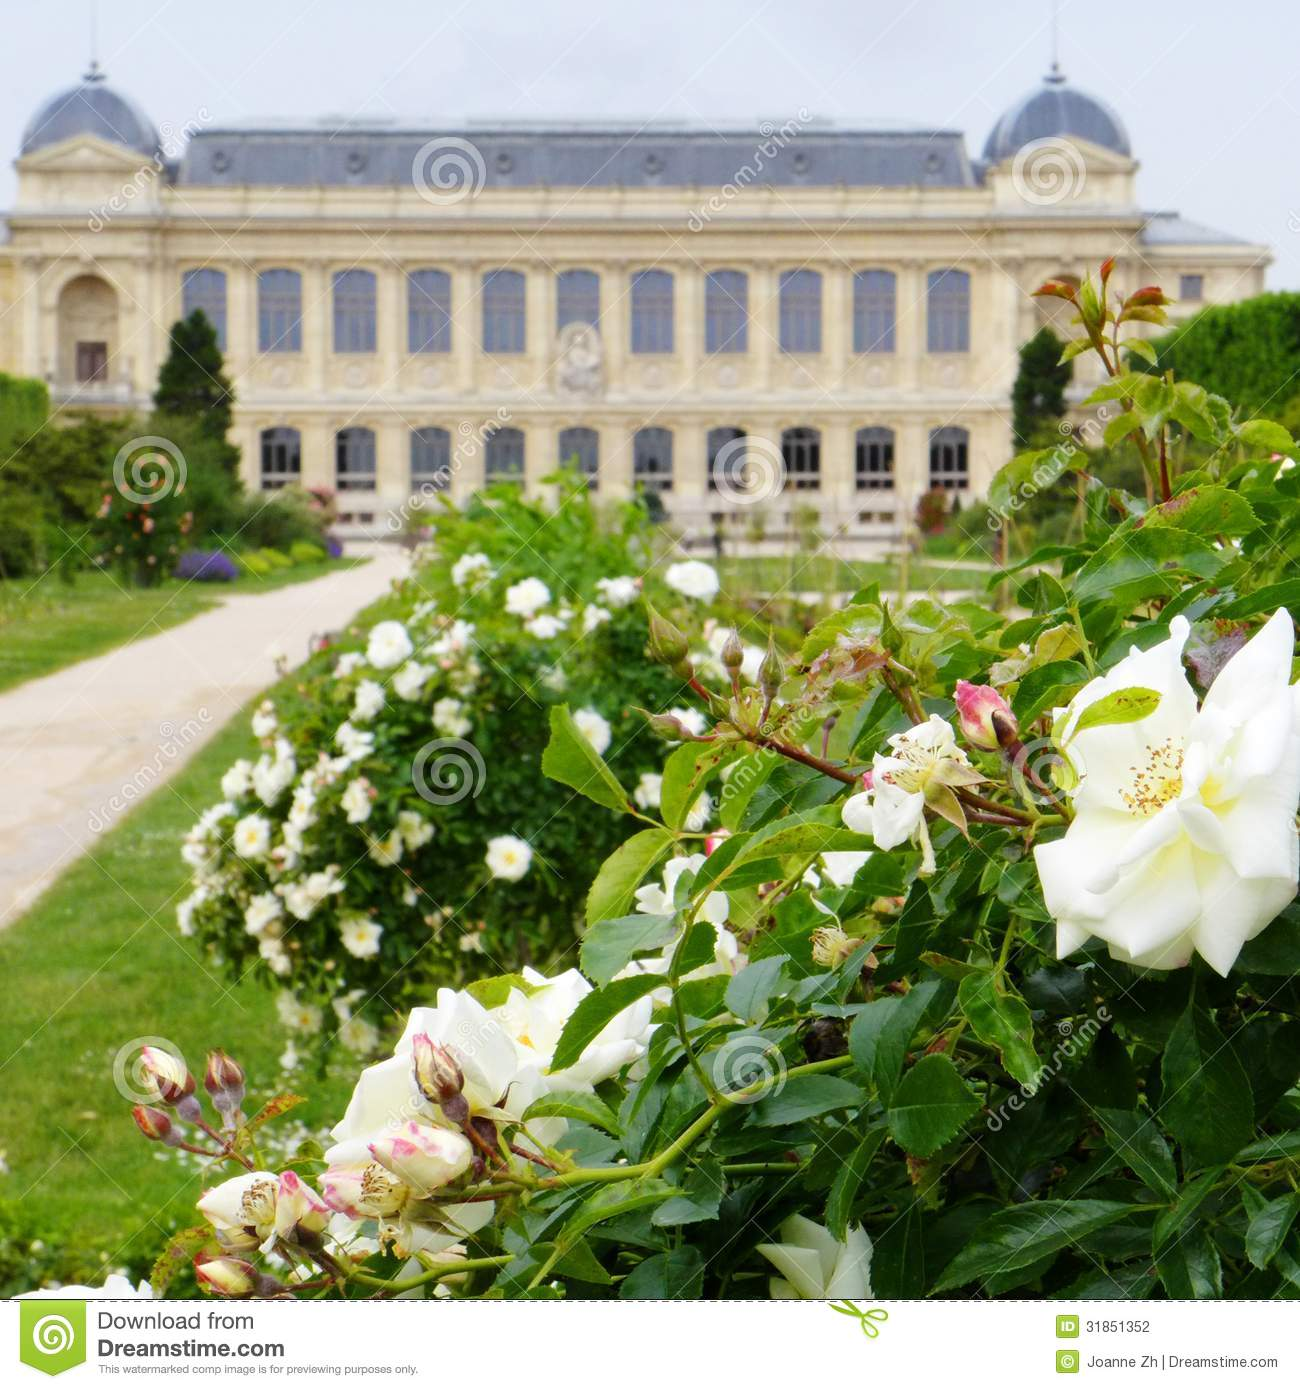 Jardin des plantes paris france stock photo image for Jardine des plantes